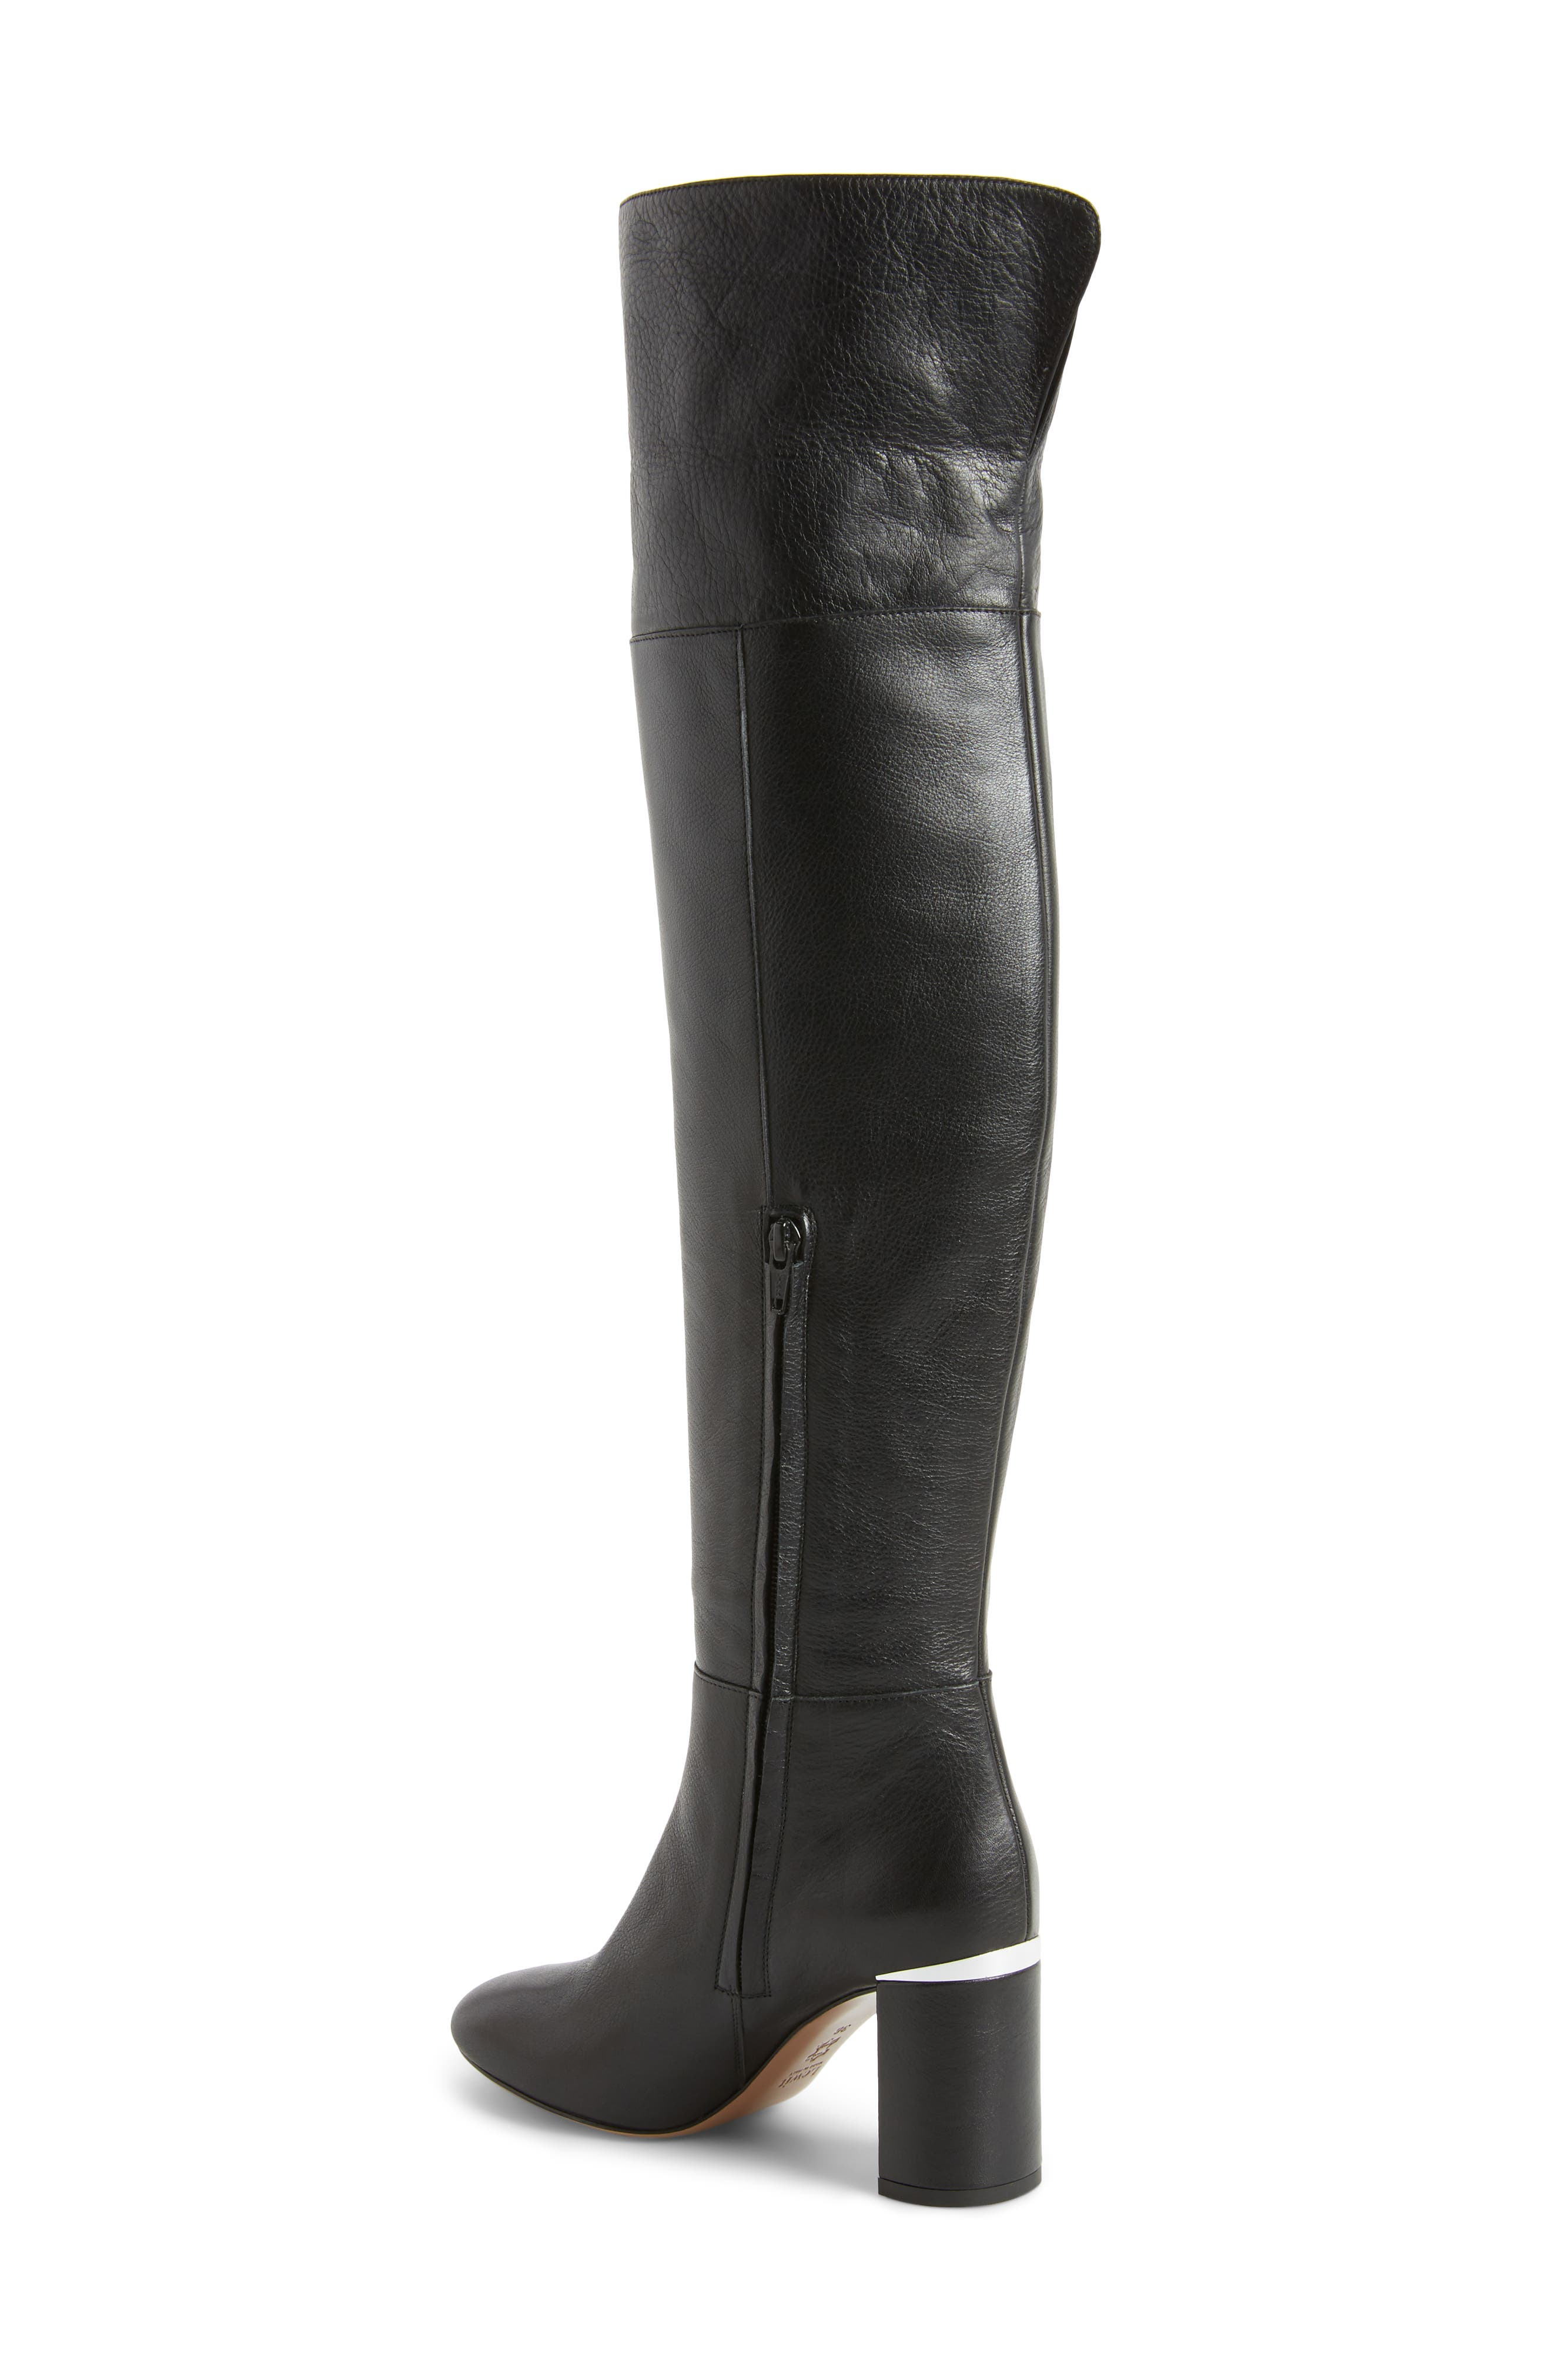 Renata Cuff Over the Knee Boot,                             Alternate thumbnail 2, color,                             001